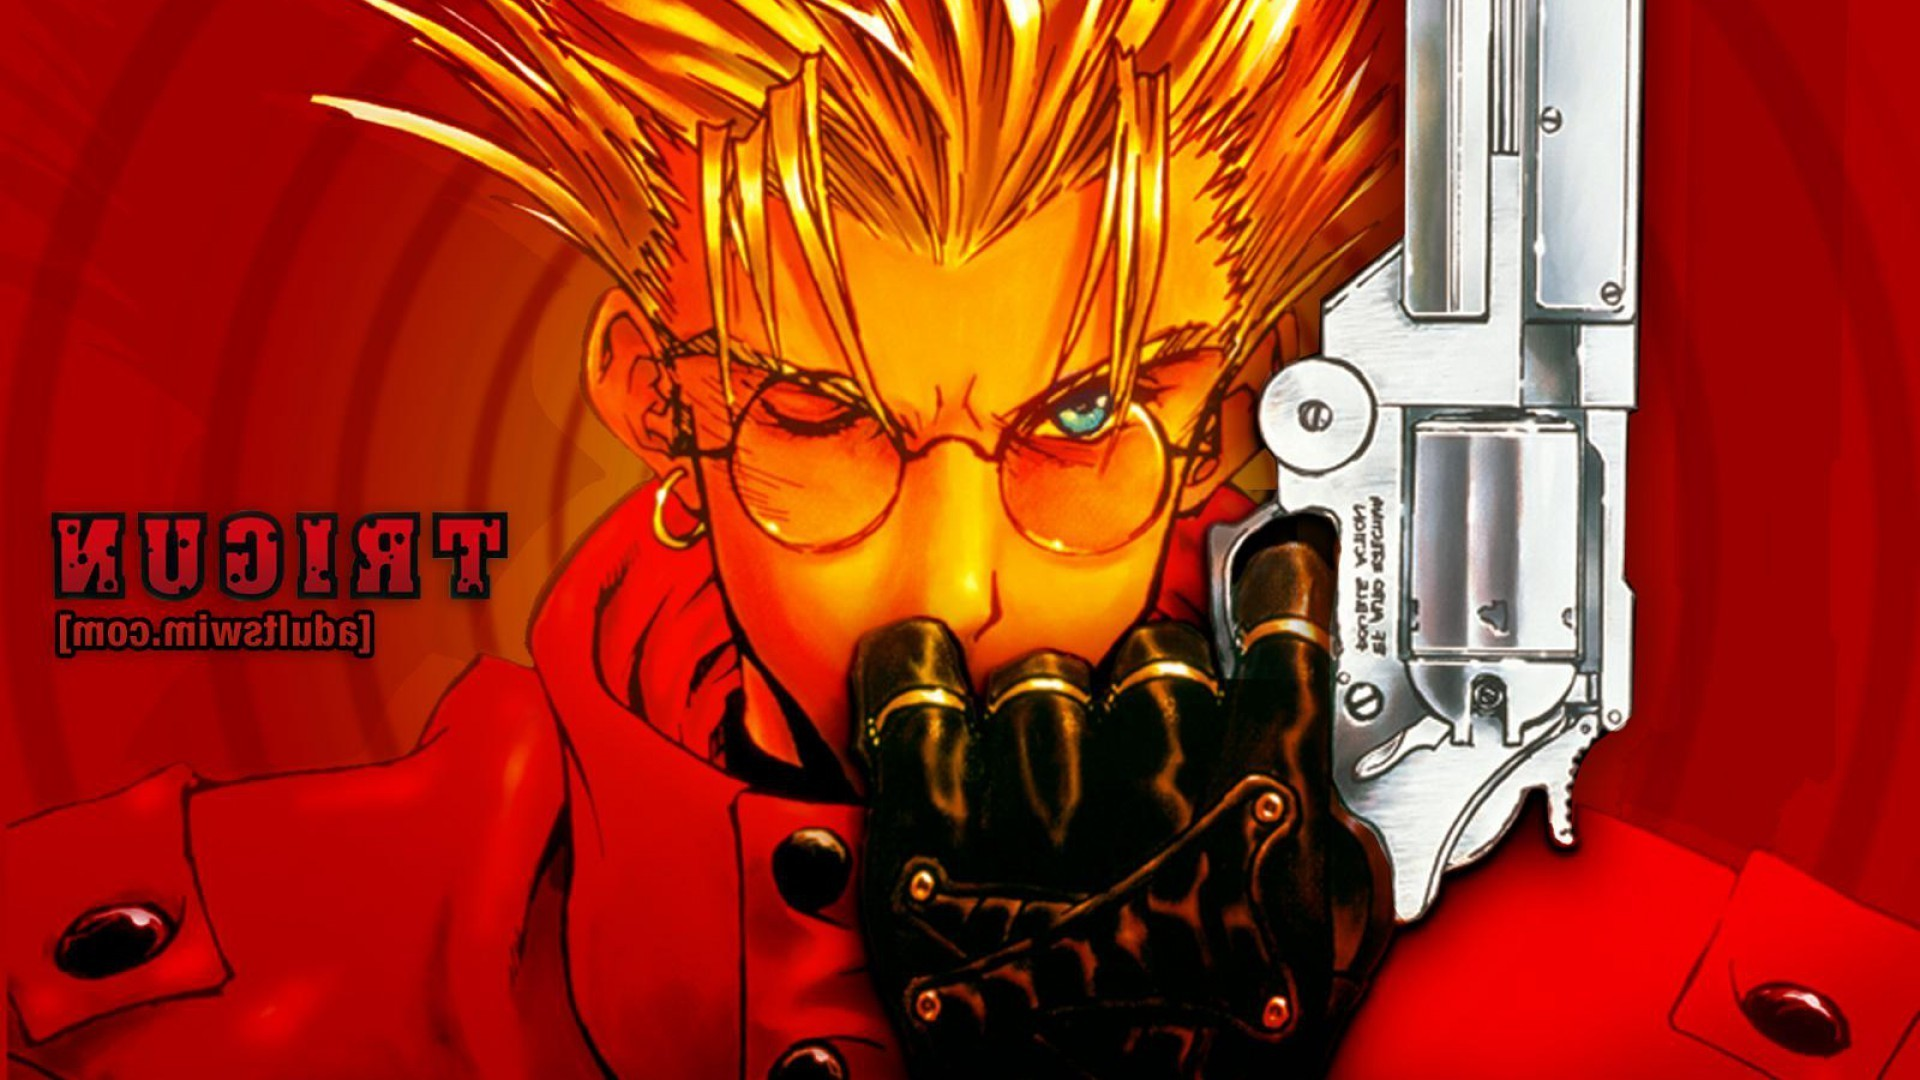 Res: 1920x1080, Trigun Wallpapers 20 - 1920 X 1080